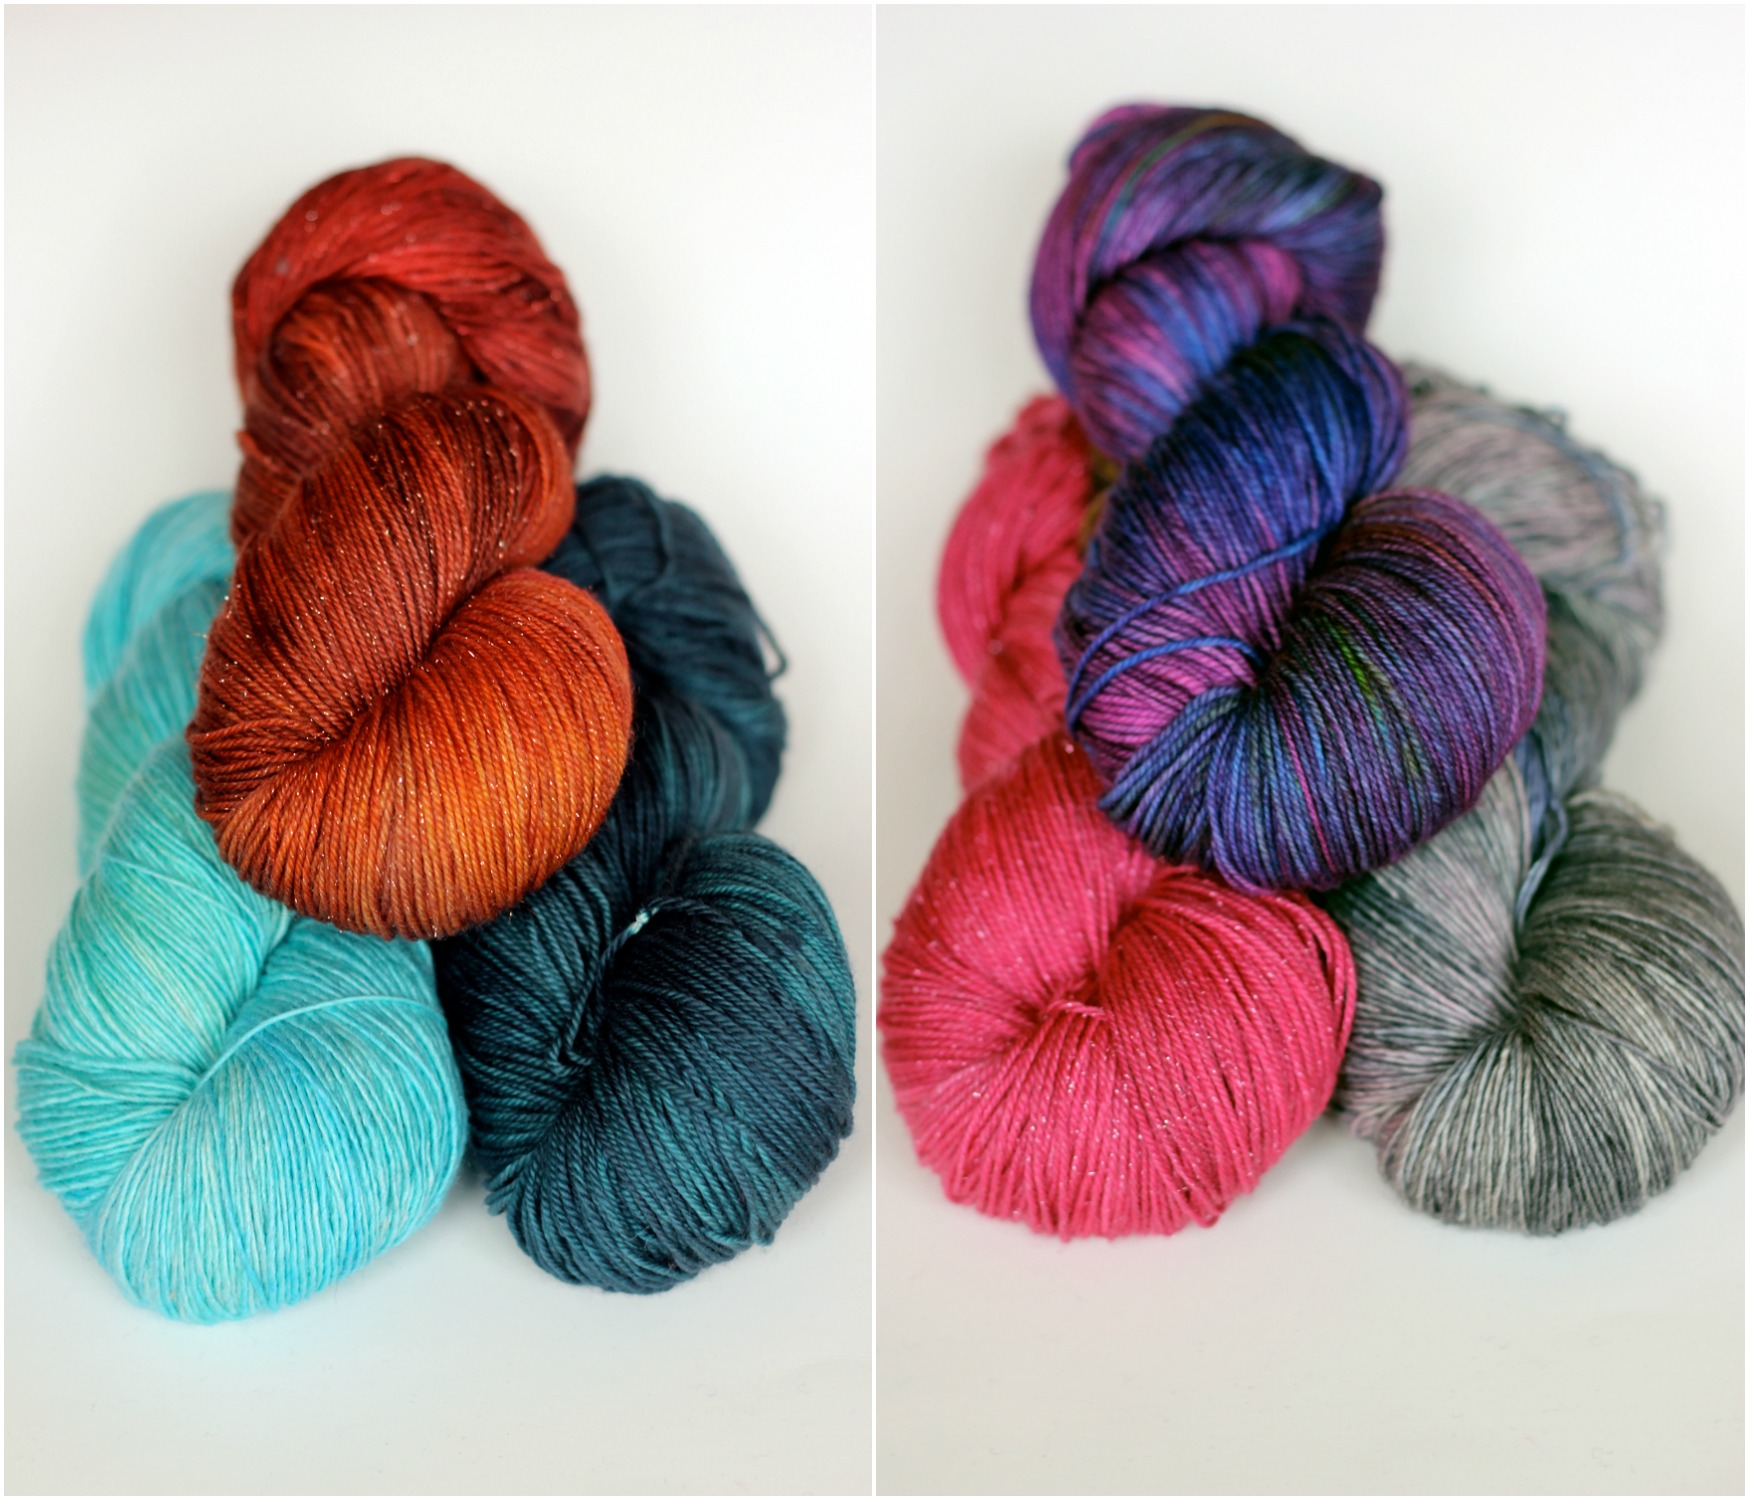 Mystery Skein sets! To give you an idea of the types of combo's I've put together, on the left we have Seabreeze, Ravine and Brick. On the right it's Orchid, Dove and Iris. You will not know what colourways you'll be receiving, you've got to love surprises!